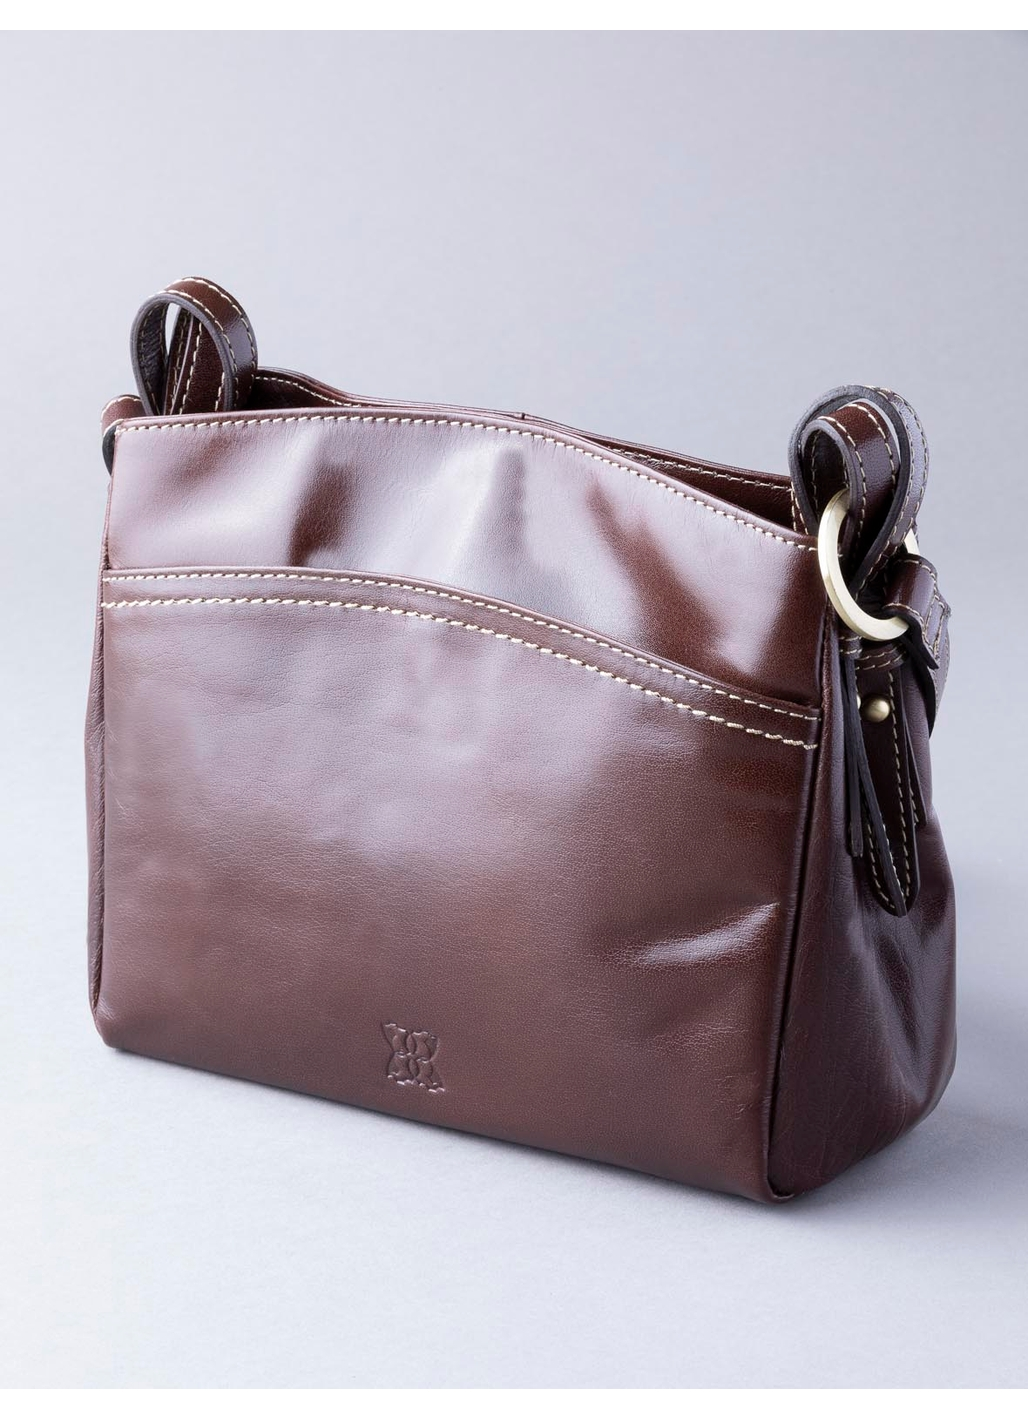 Bowness Leather Organiser Bag in Brown